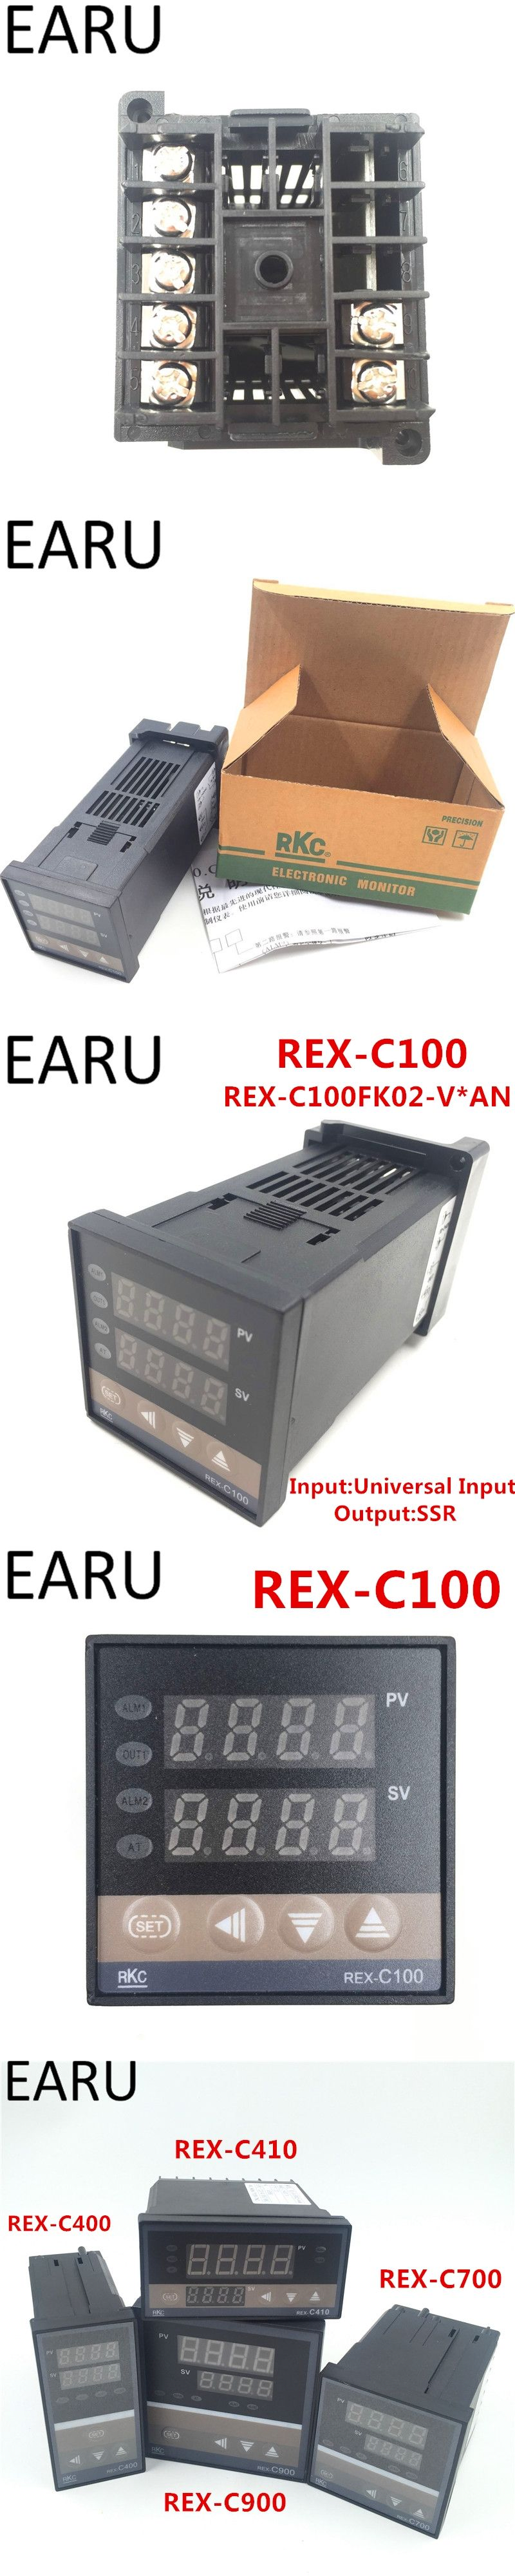 New Rkc Rex C100 Digital Pid Temperature Control Controller Solid State Relay Finder Thermostat Thermometer Ssr Output Universal Input